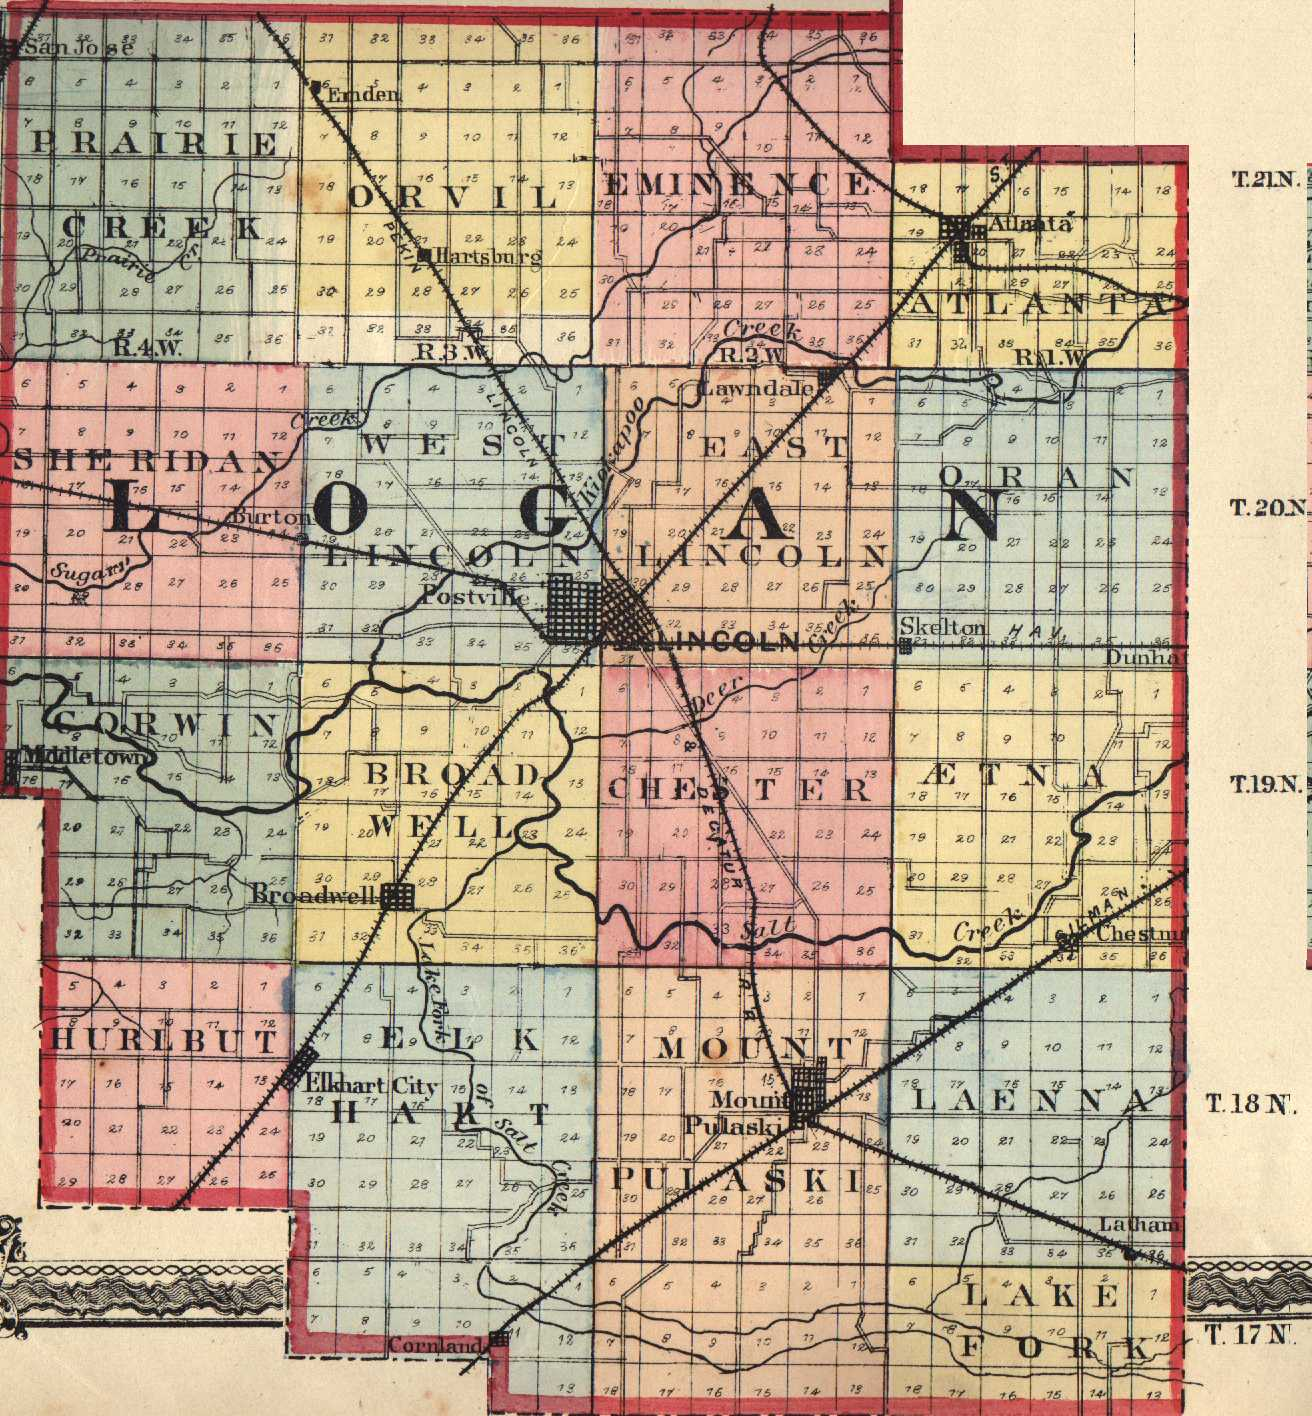 Logan County Illinois Maps And Gazetteers - County map illinois usa